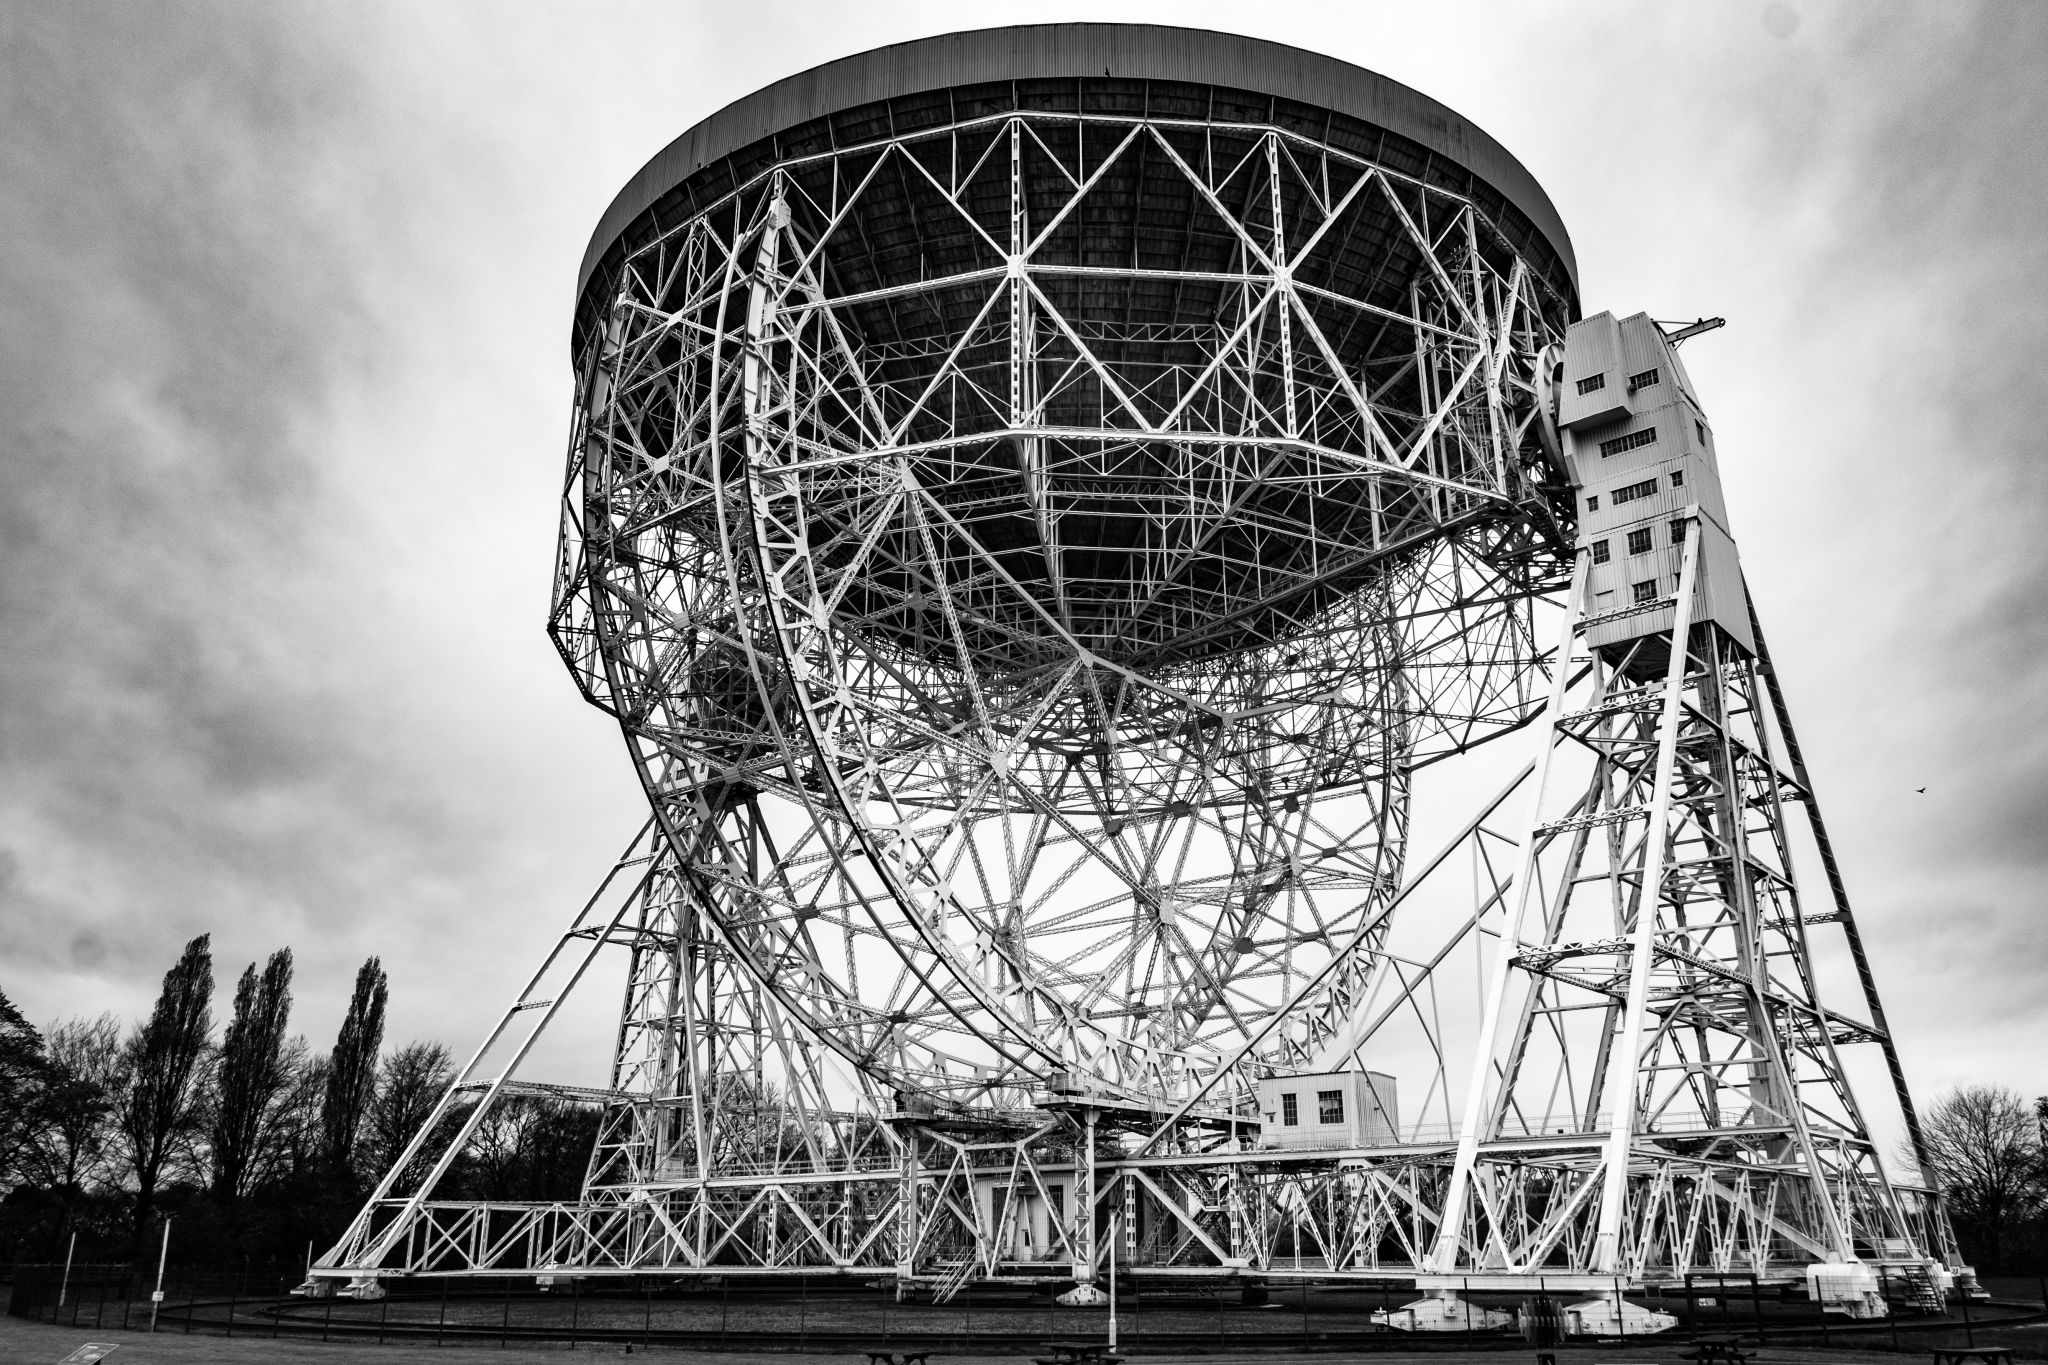 Jodrell Bank, United Kingdom